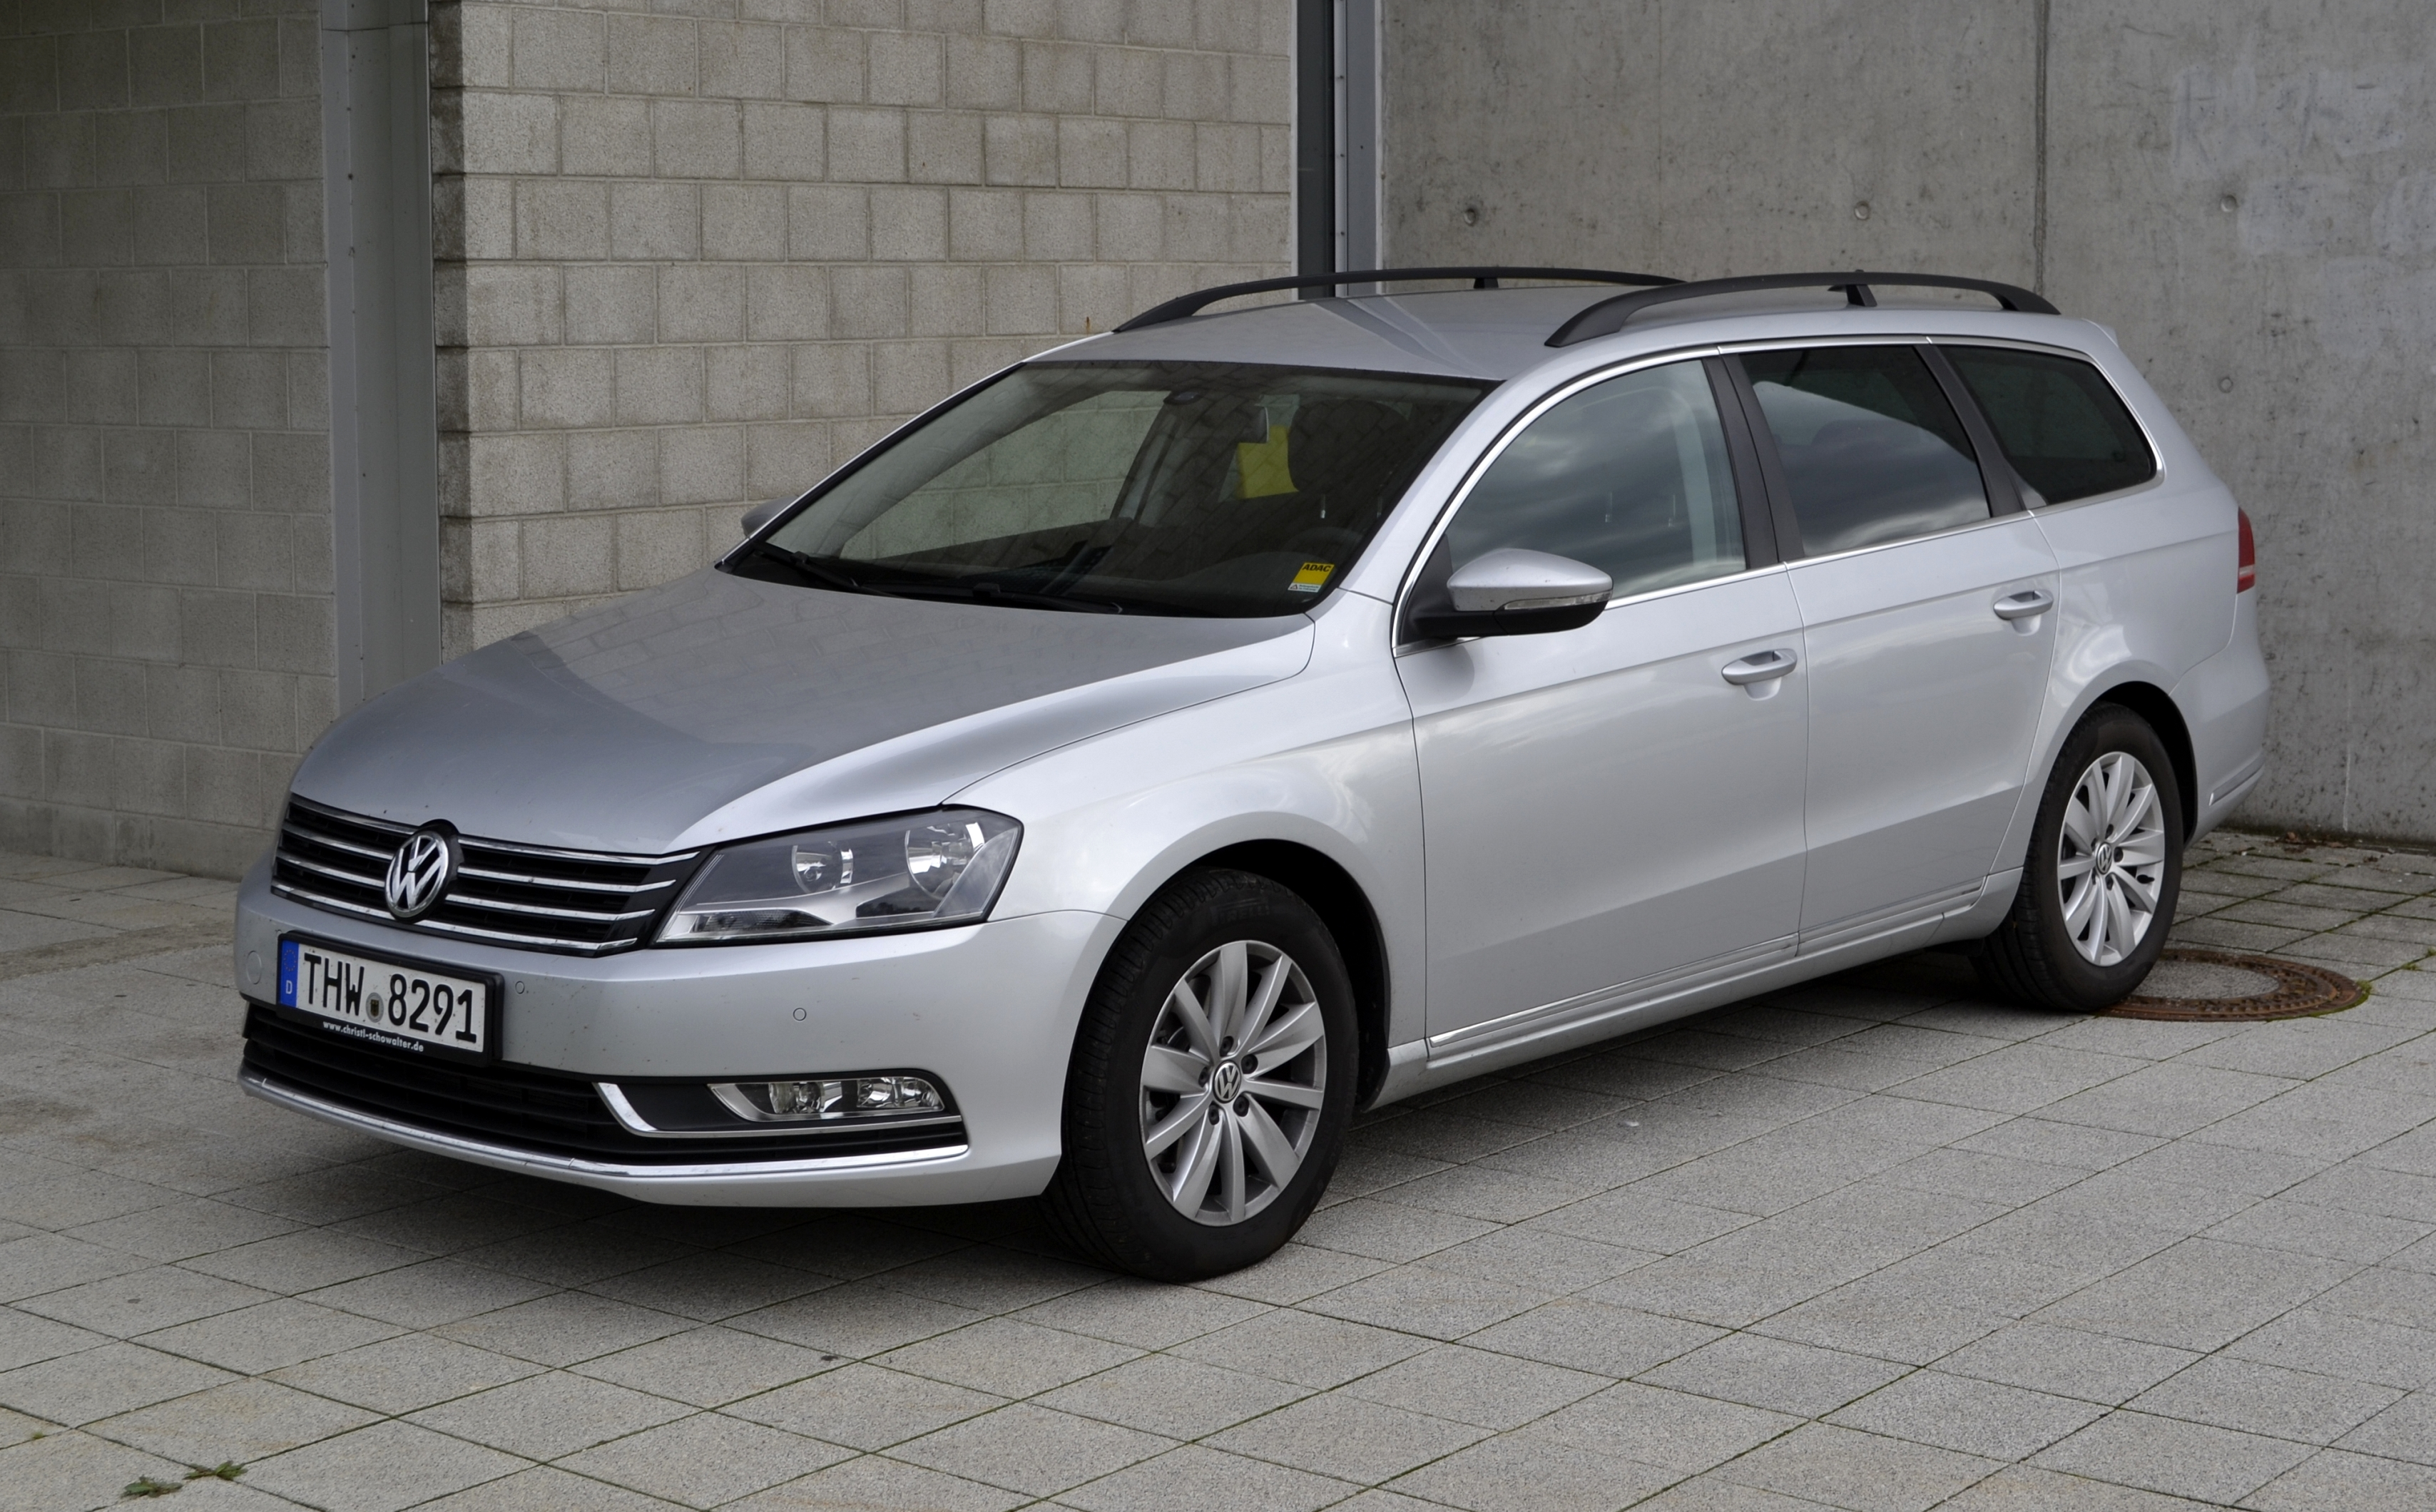 Volkswagen Passat B6 Wikipedia 2007 Gti Fsi Engine Diagram 2010 Facelift B7edit